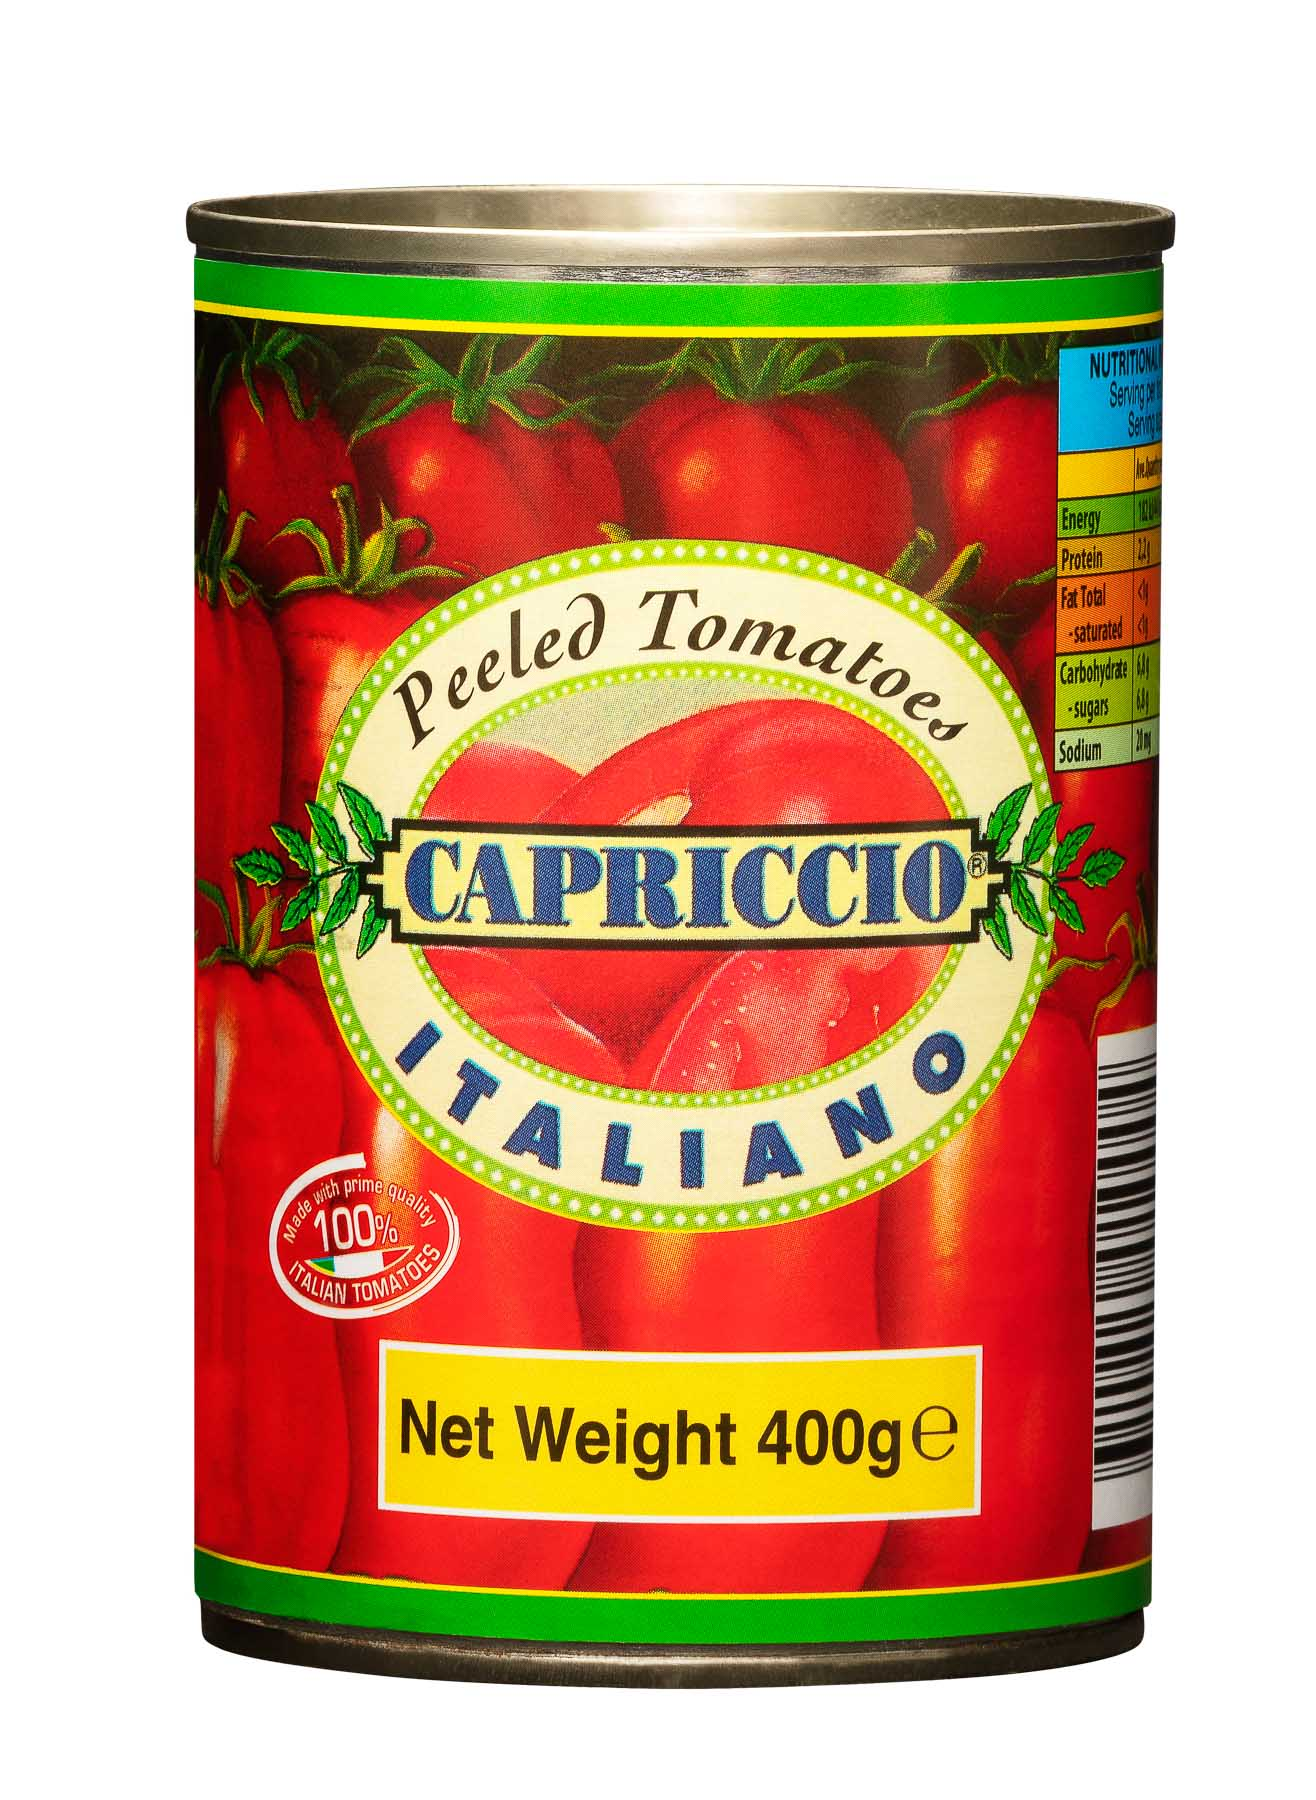 Pelled Tomatoes Italiano 400g - Product Photography sample